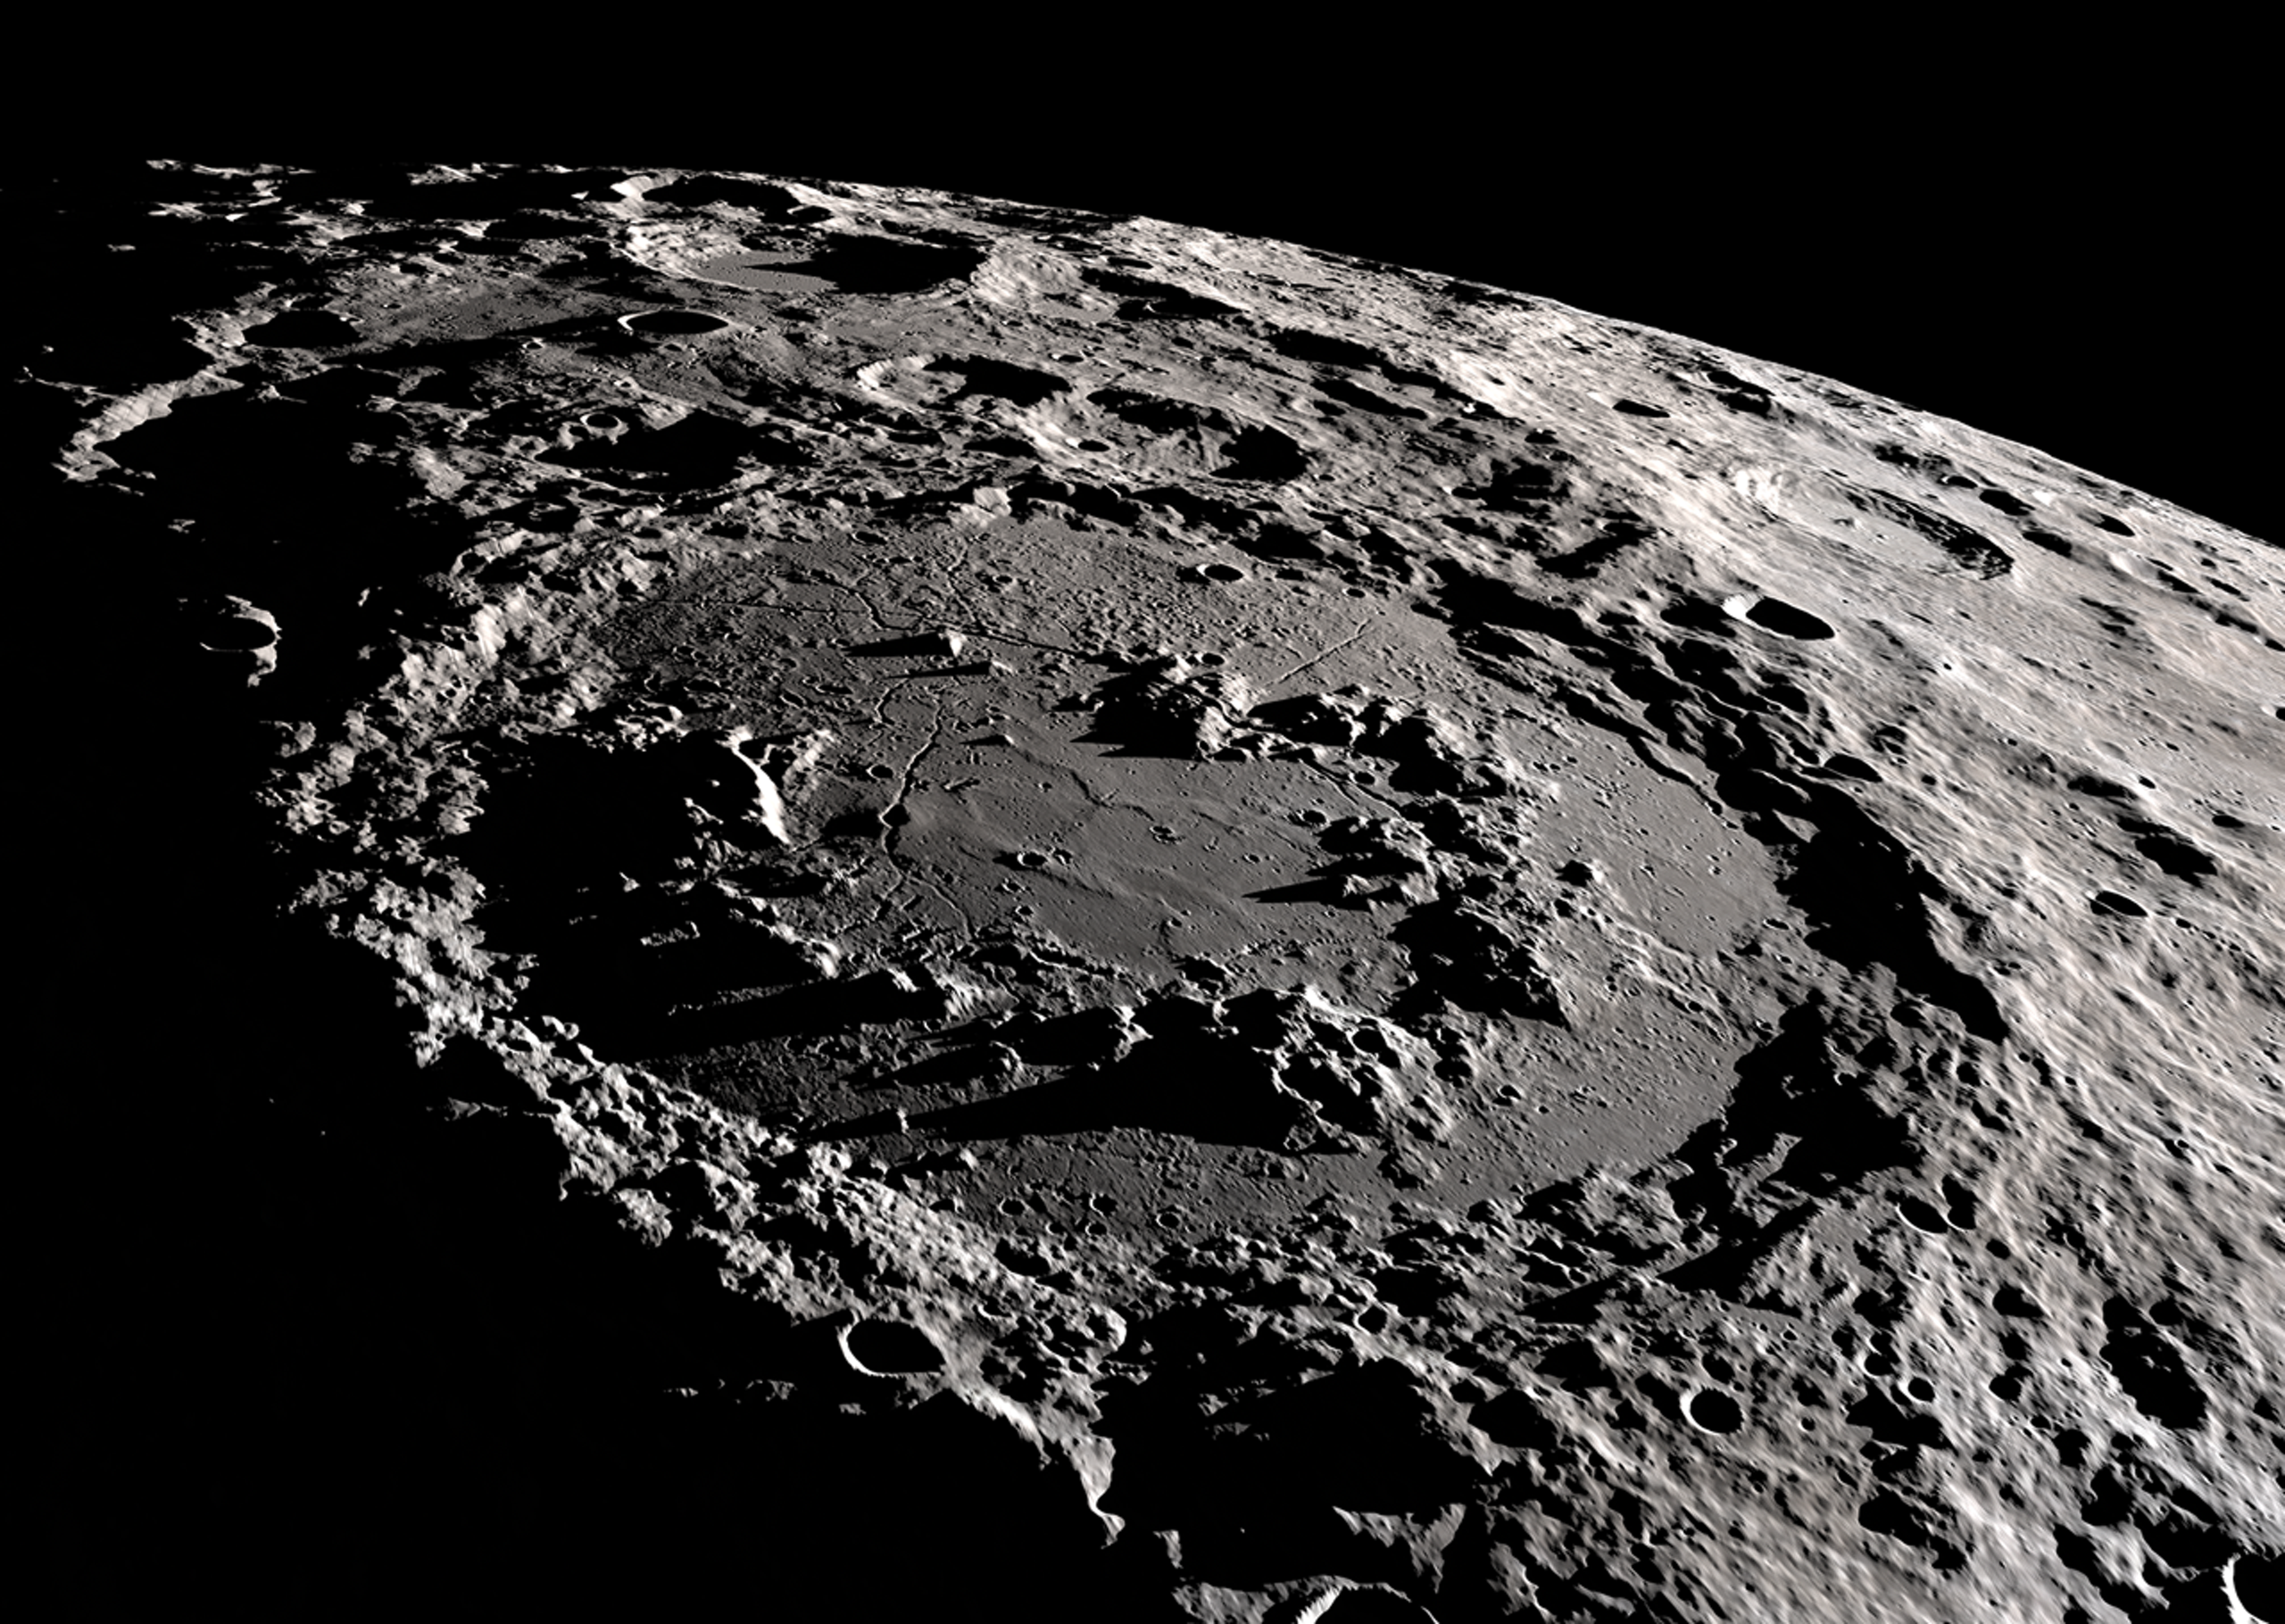 The moon's Schrödinger basin. According to lunar convention, craters more than 186 miles across are called basins.